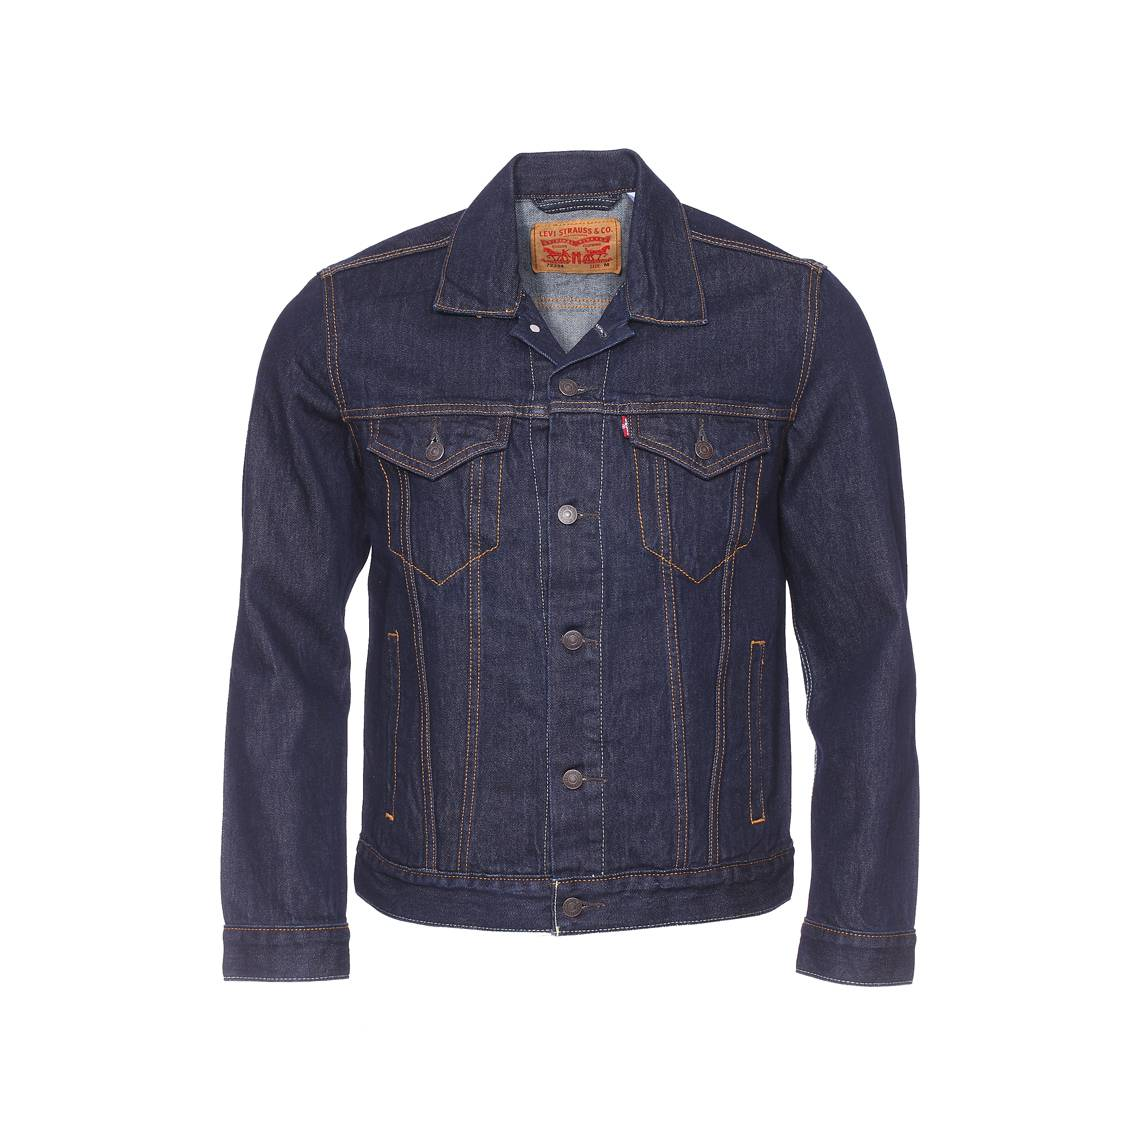 veste en jean trucker levi 39 s bleu fonc rue des hommes. Black Bedroom Furniture Sets. Home Design Ideas